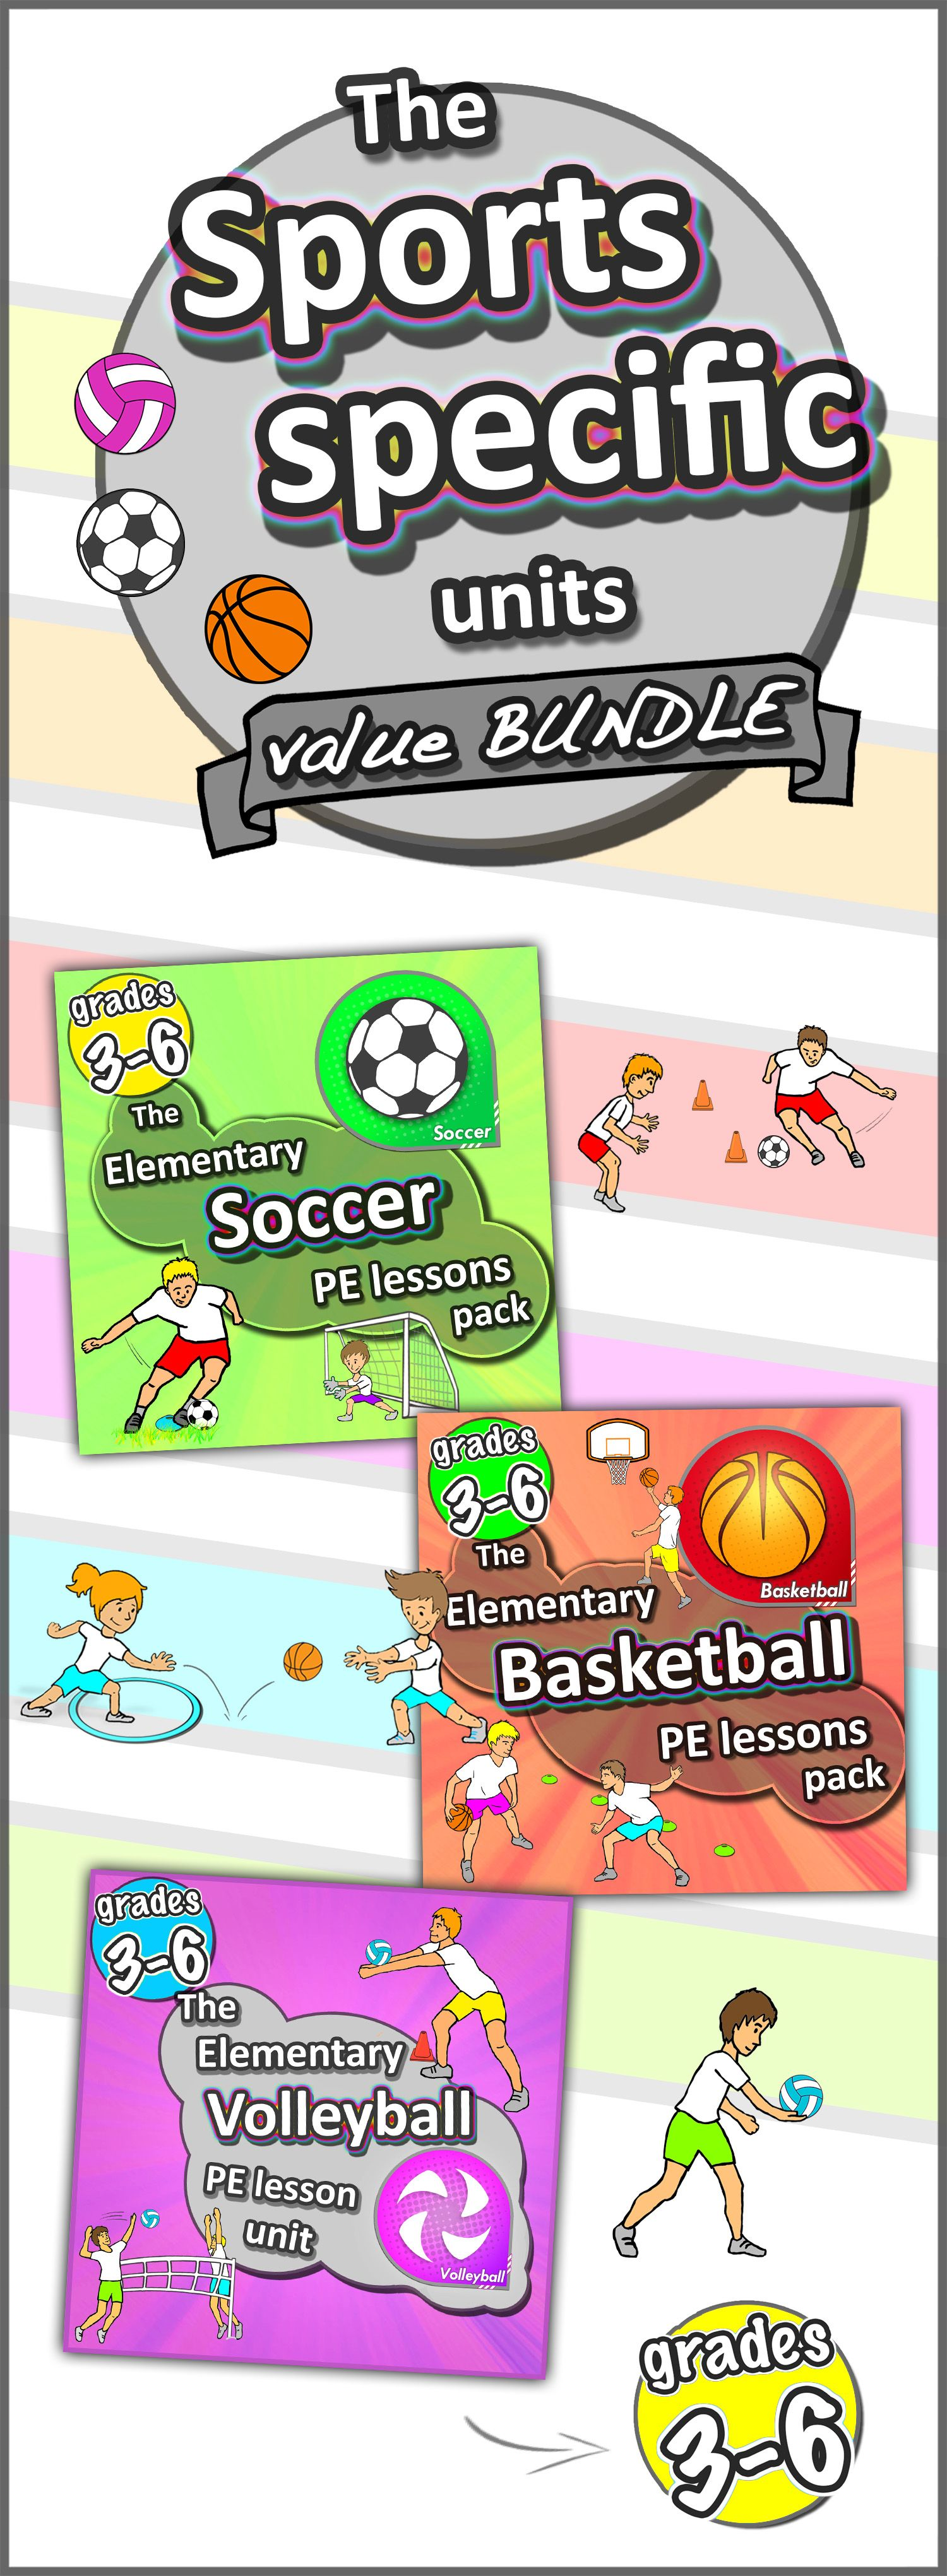 Specific Sports Bundle Soccer Basketball Volleyball Units Basic Skills In Relay Race Each Unit Is Packed With Warm Up Games Pair Ball Work Skill Drills Modified Rotation Stations Races This Youll Get Our